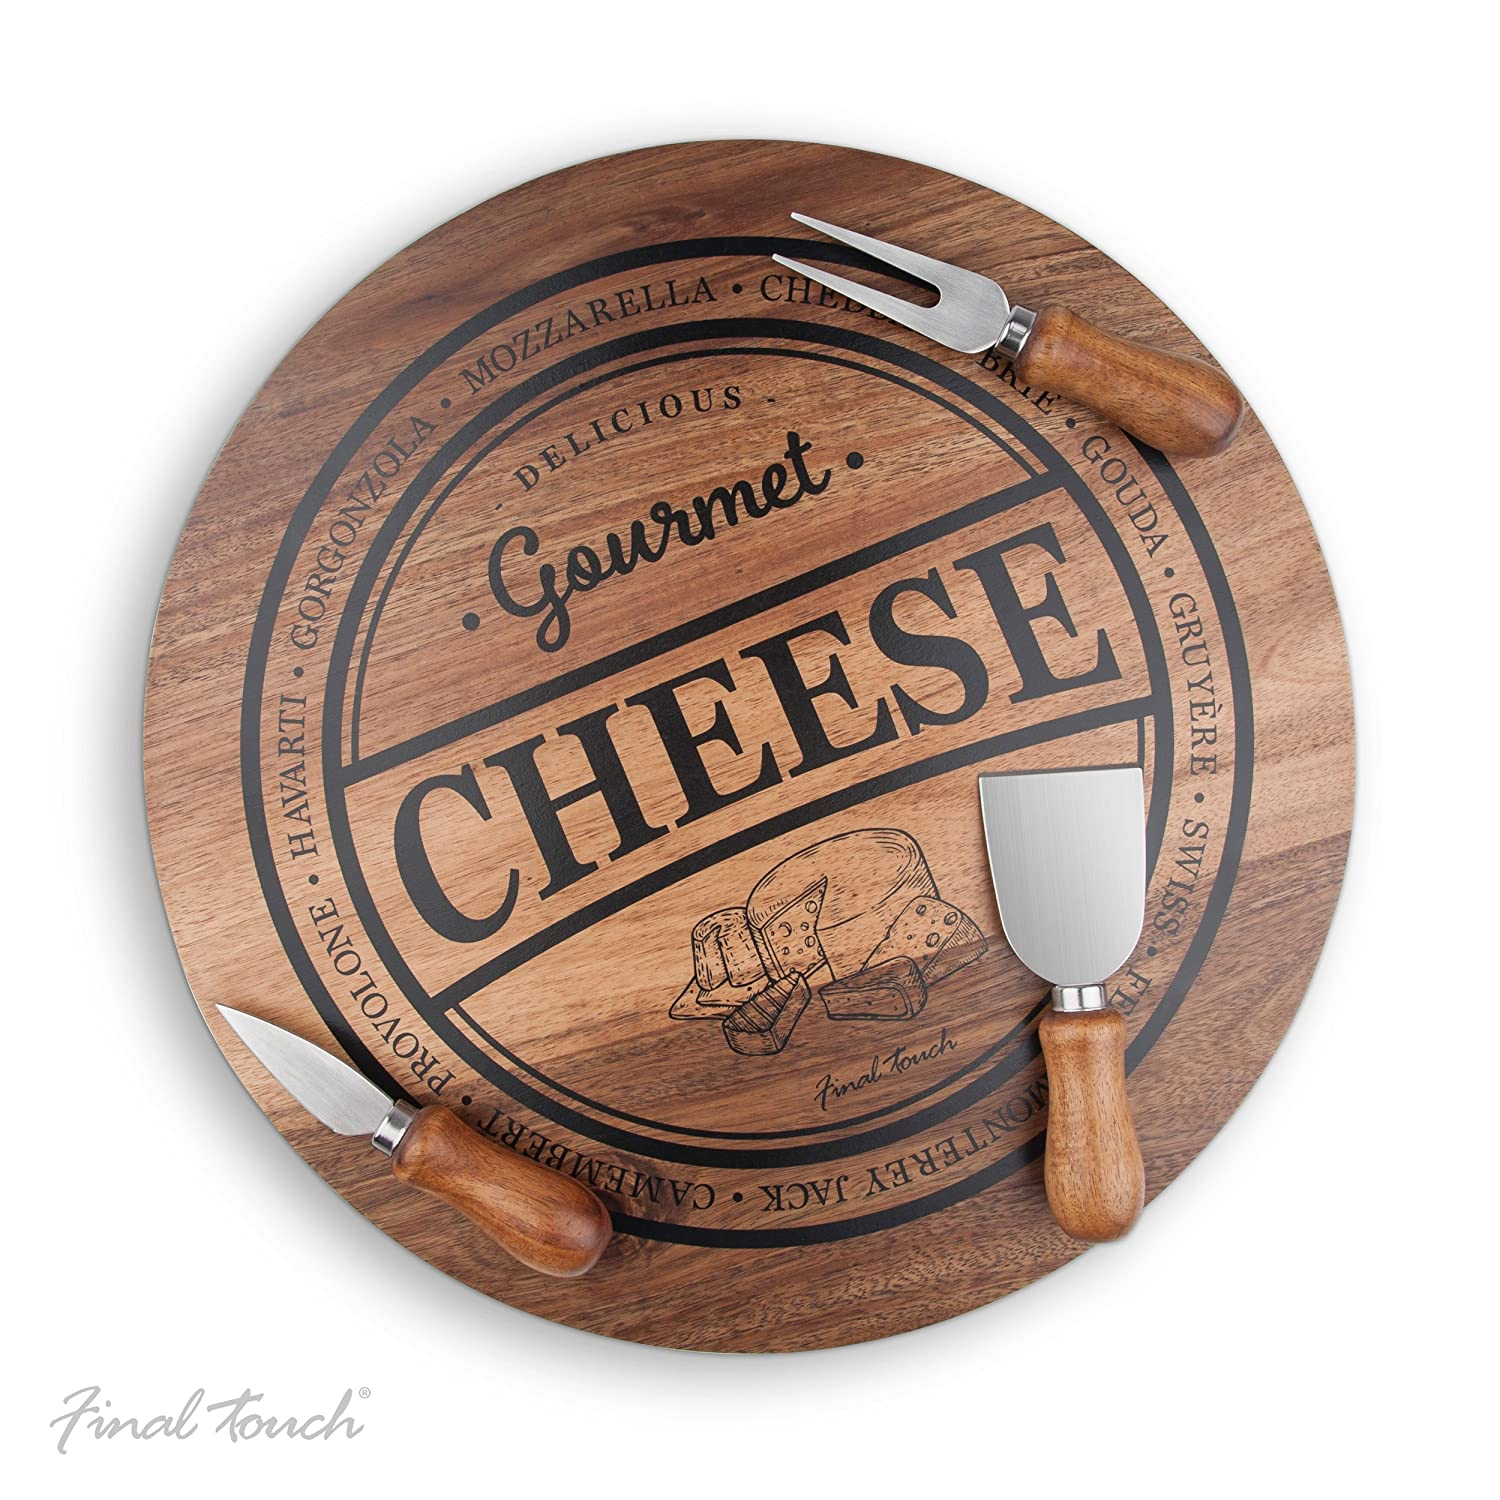 Final Touch 4pc Cheese Board Set Product Specialties Inc.